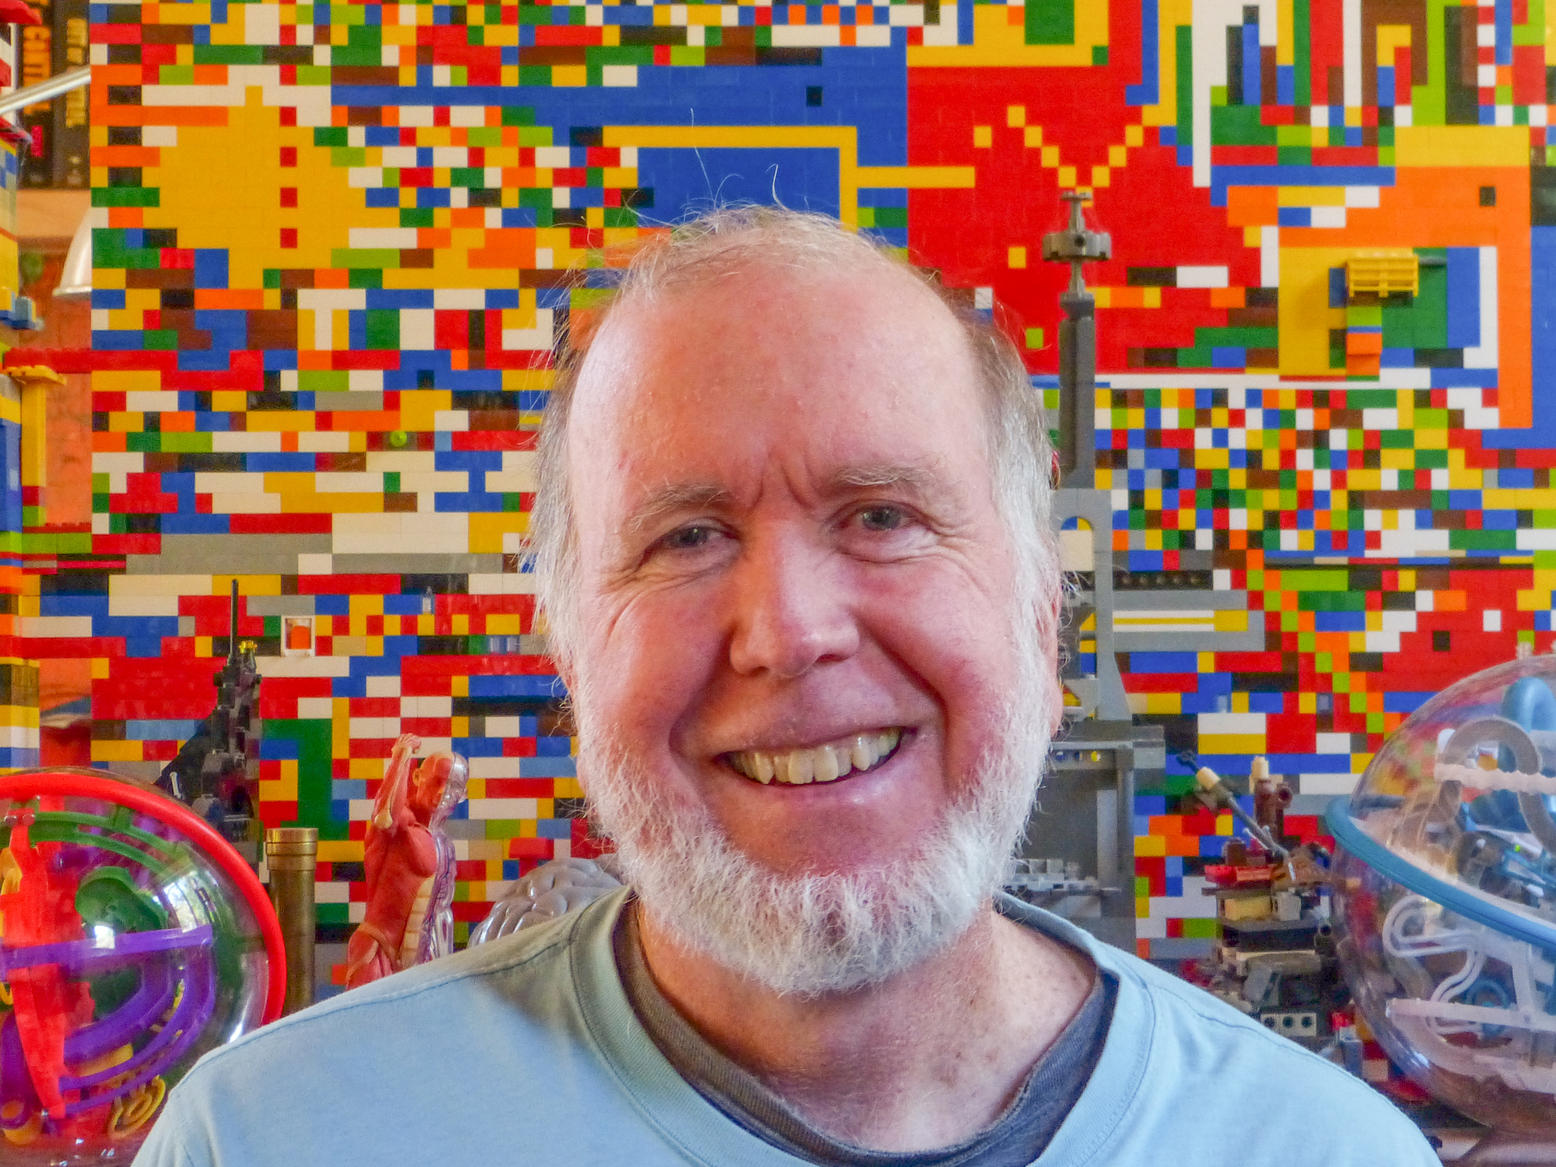 kevin kelly on the inevitable rise of virtual reality and